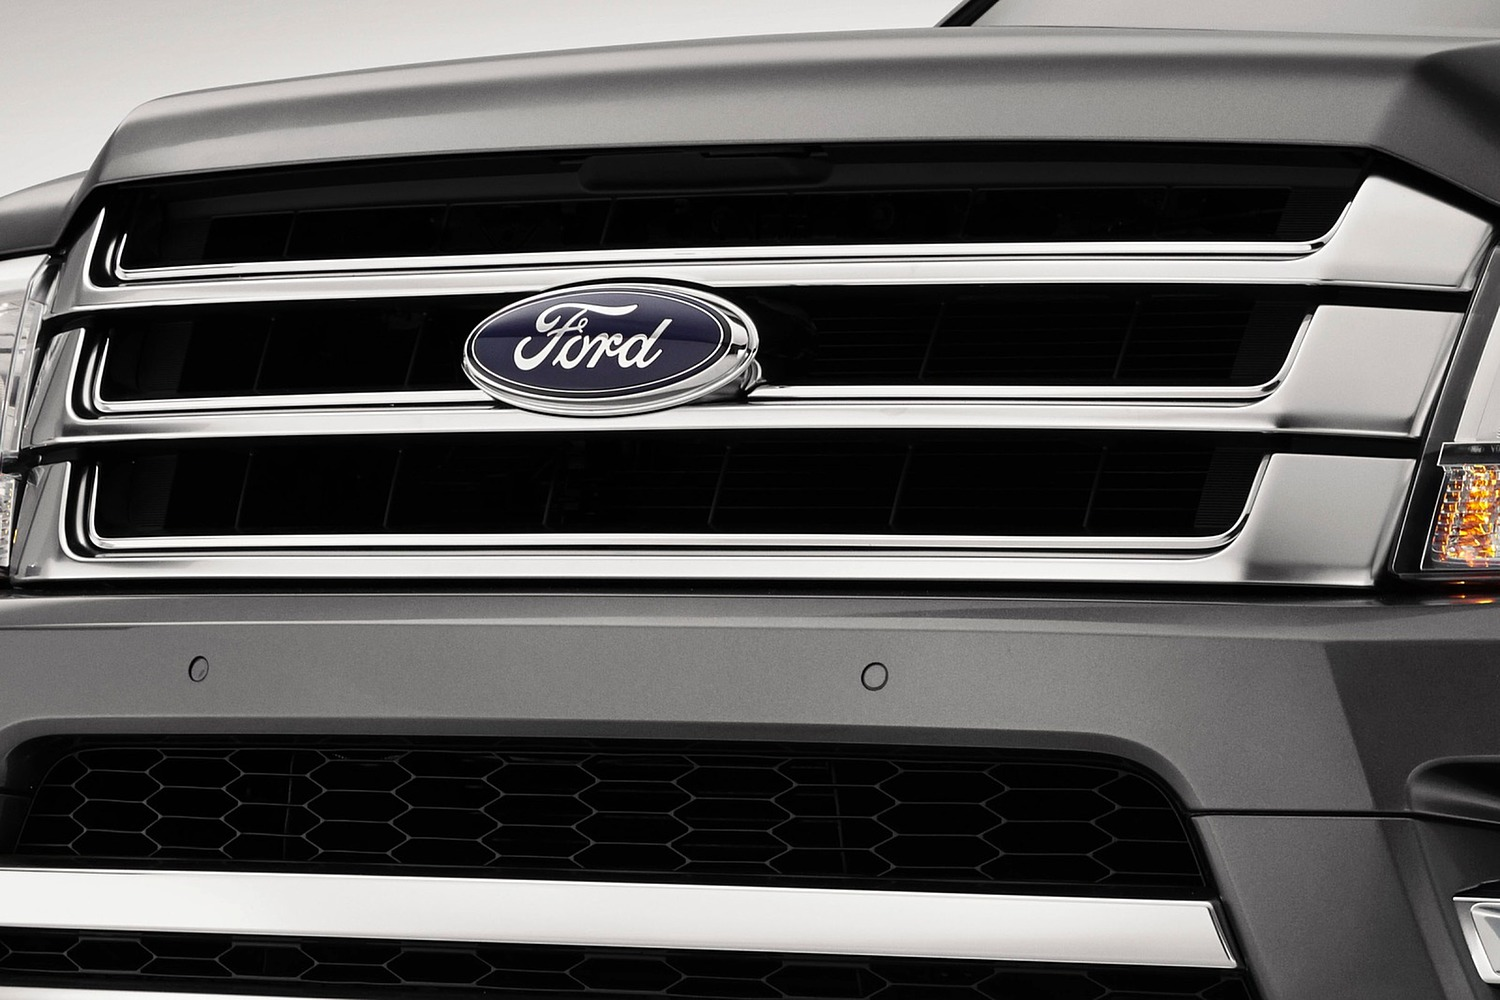 Ford Expedition Platinum 4dr SUV Front Badge (2015 model year shown)